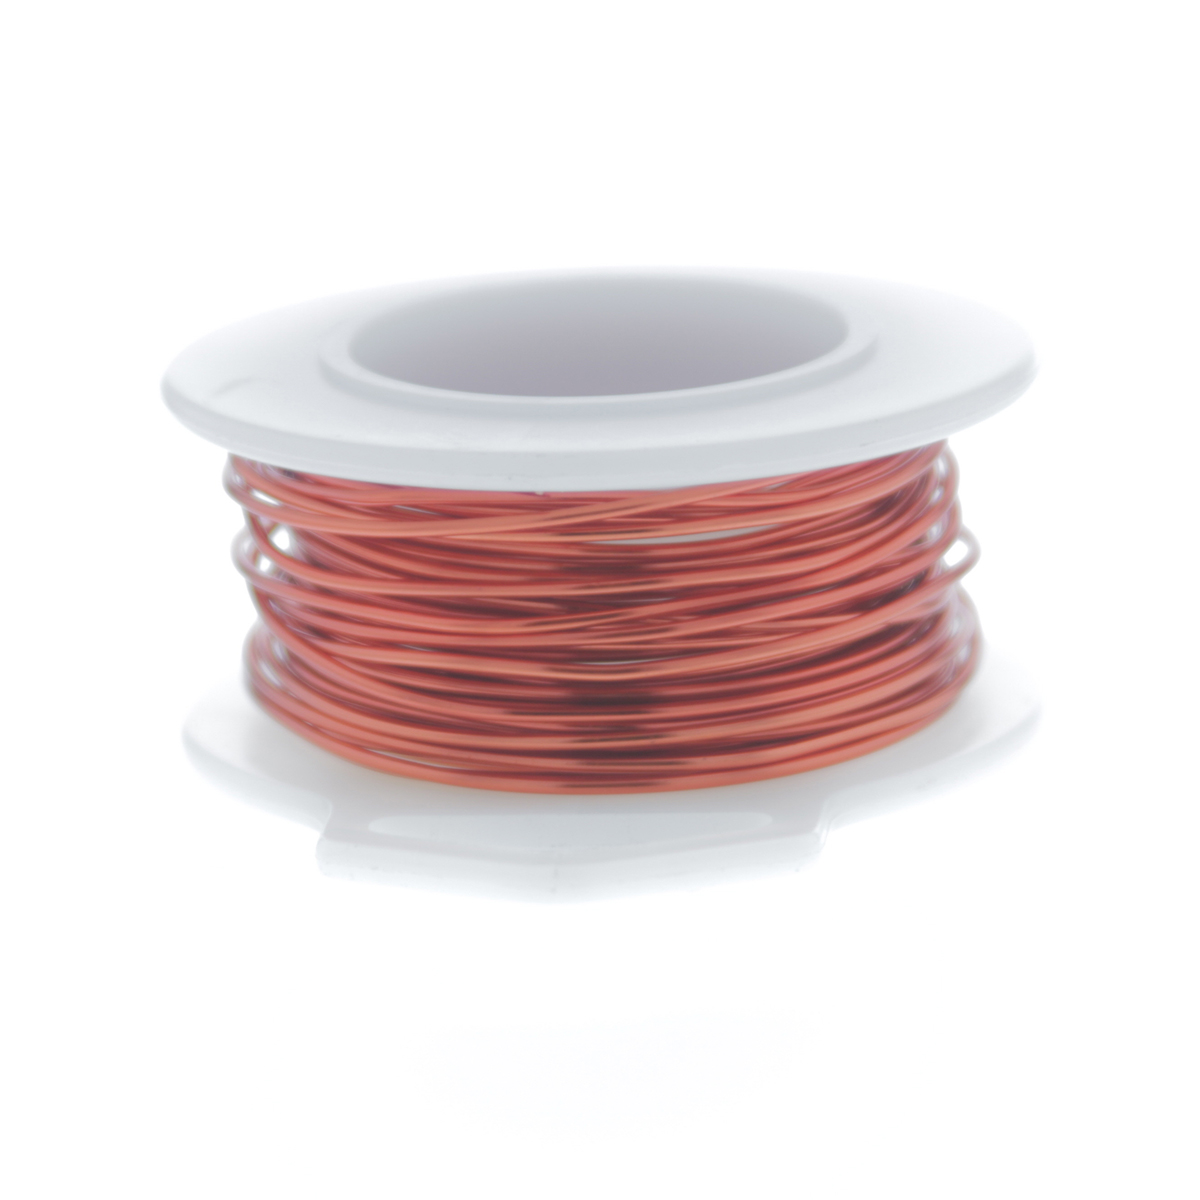 32 Gauge Round Silver Plated Orange Copper Craft Wire - 90 ft